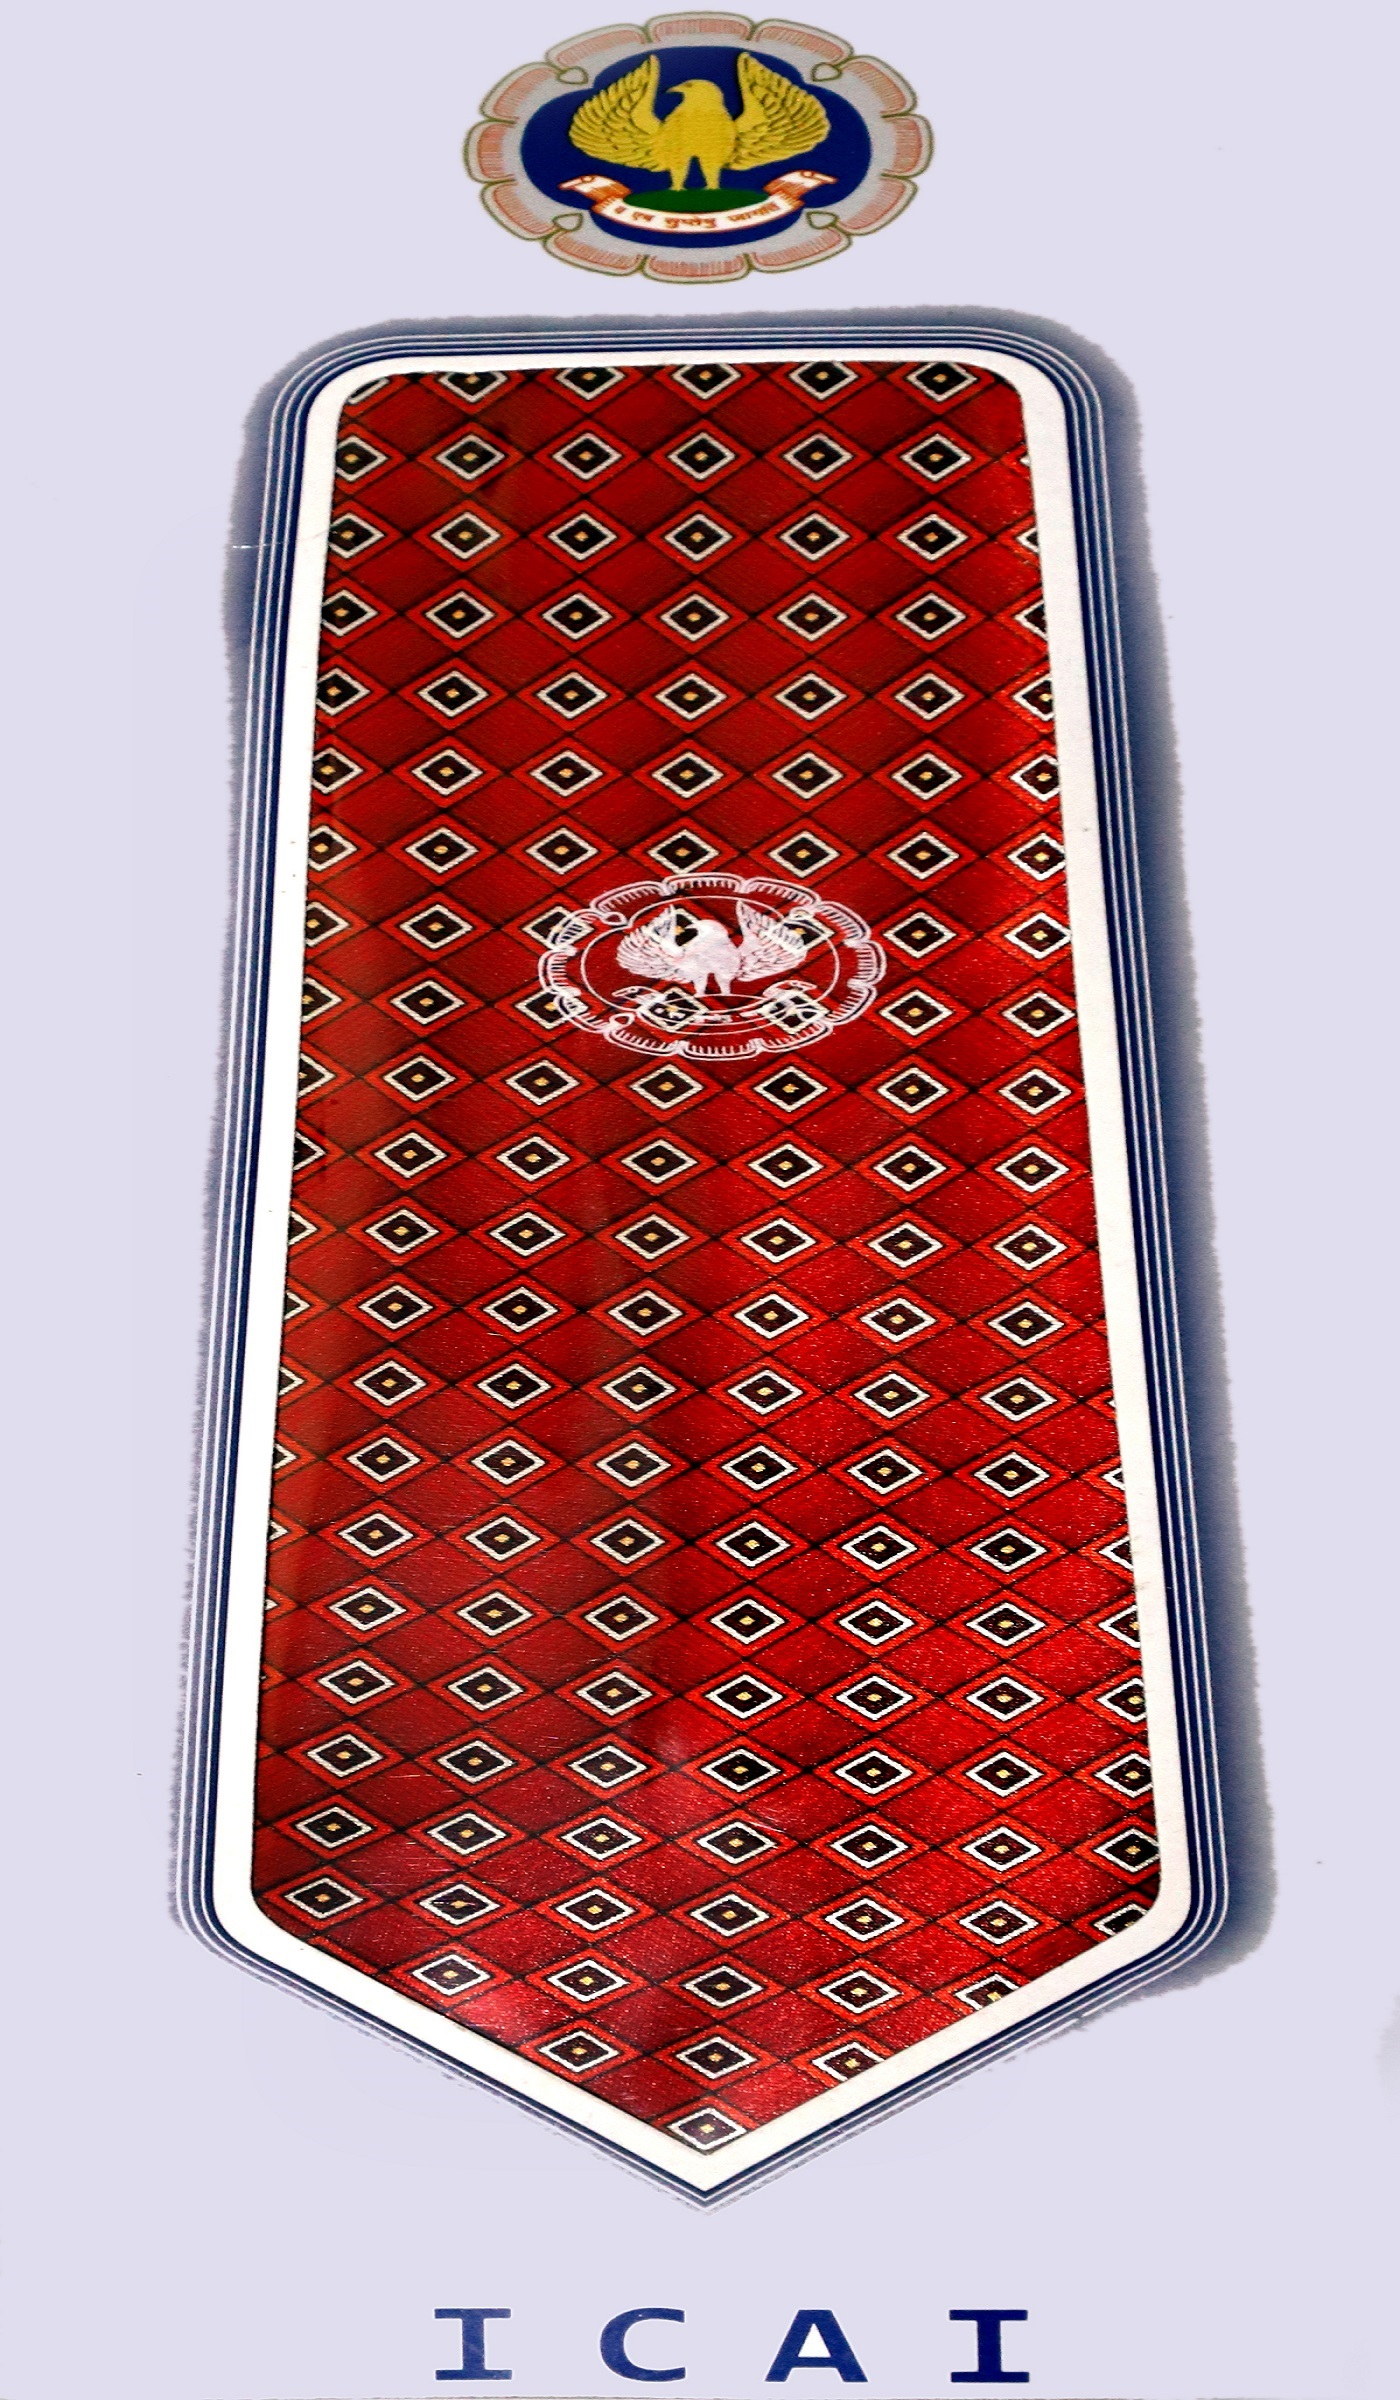 ICAI Neck Tie Red